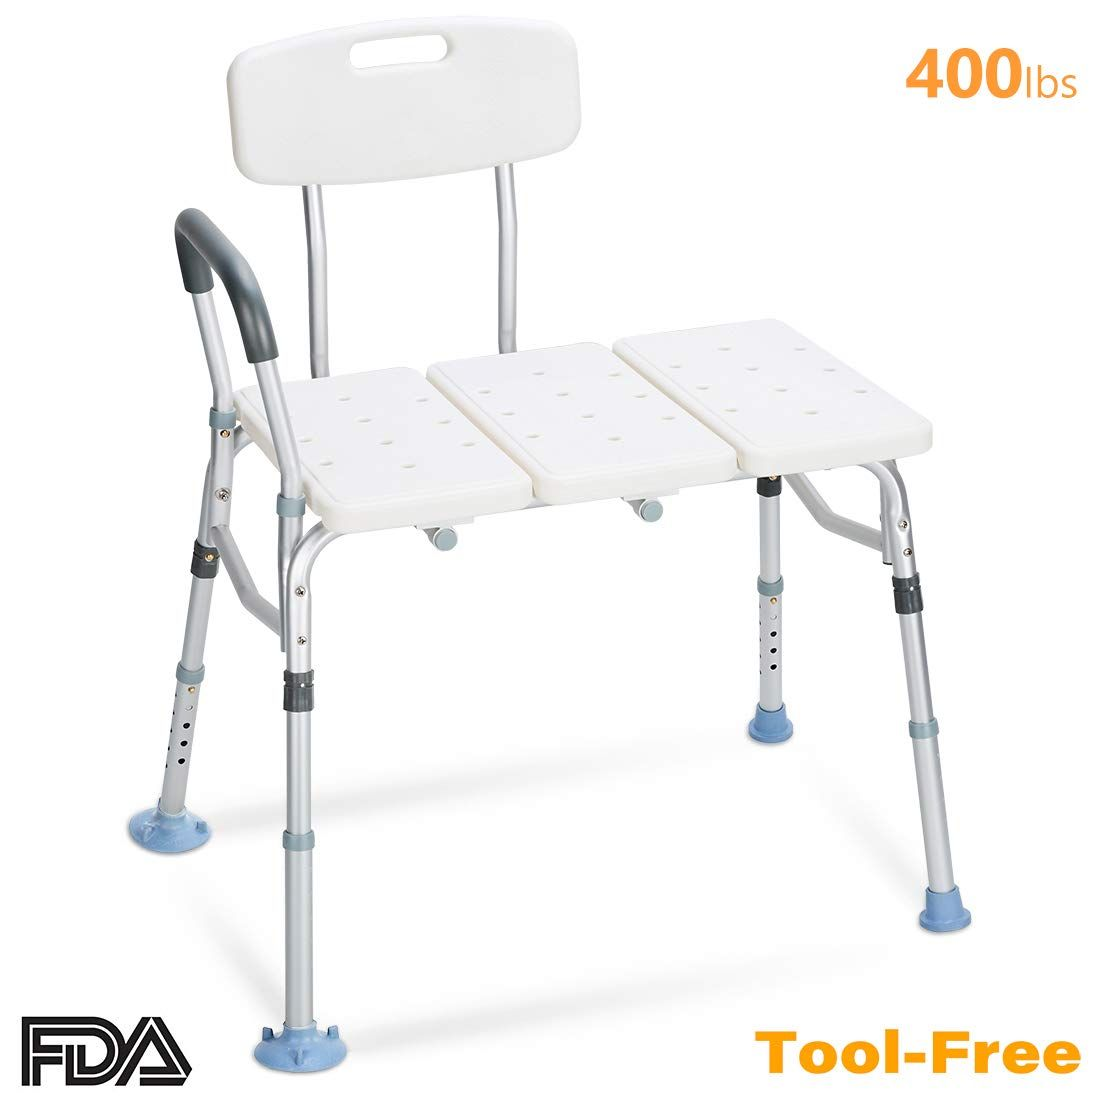 Oasisspace Tub Transfer Bench 400 Lb Heavy Duty Bath And Shower Transfer Bench Adjustable Handicap Shower Handicap Shower Chair Shower Chair Transfer Bench